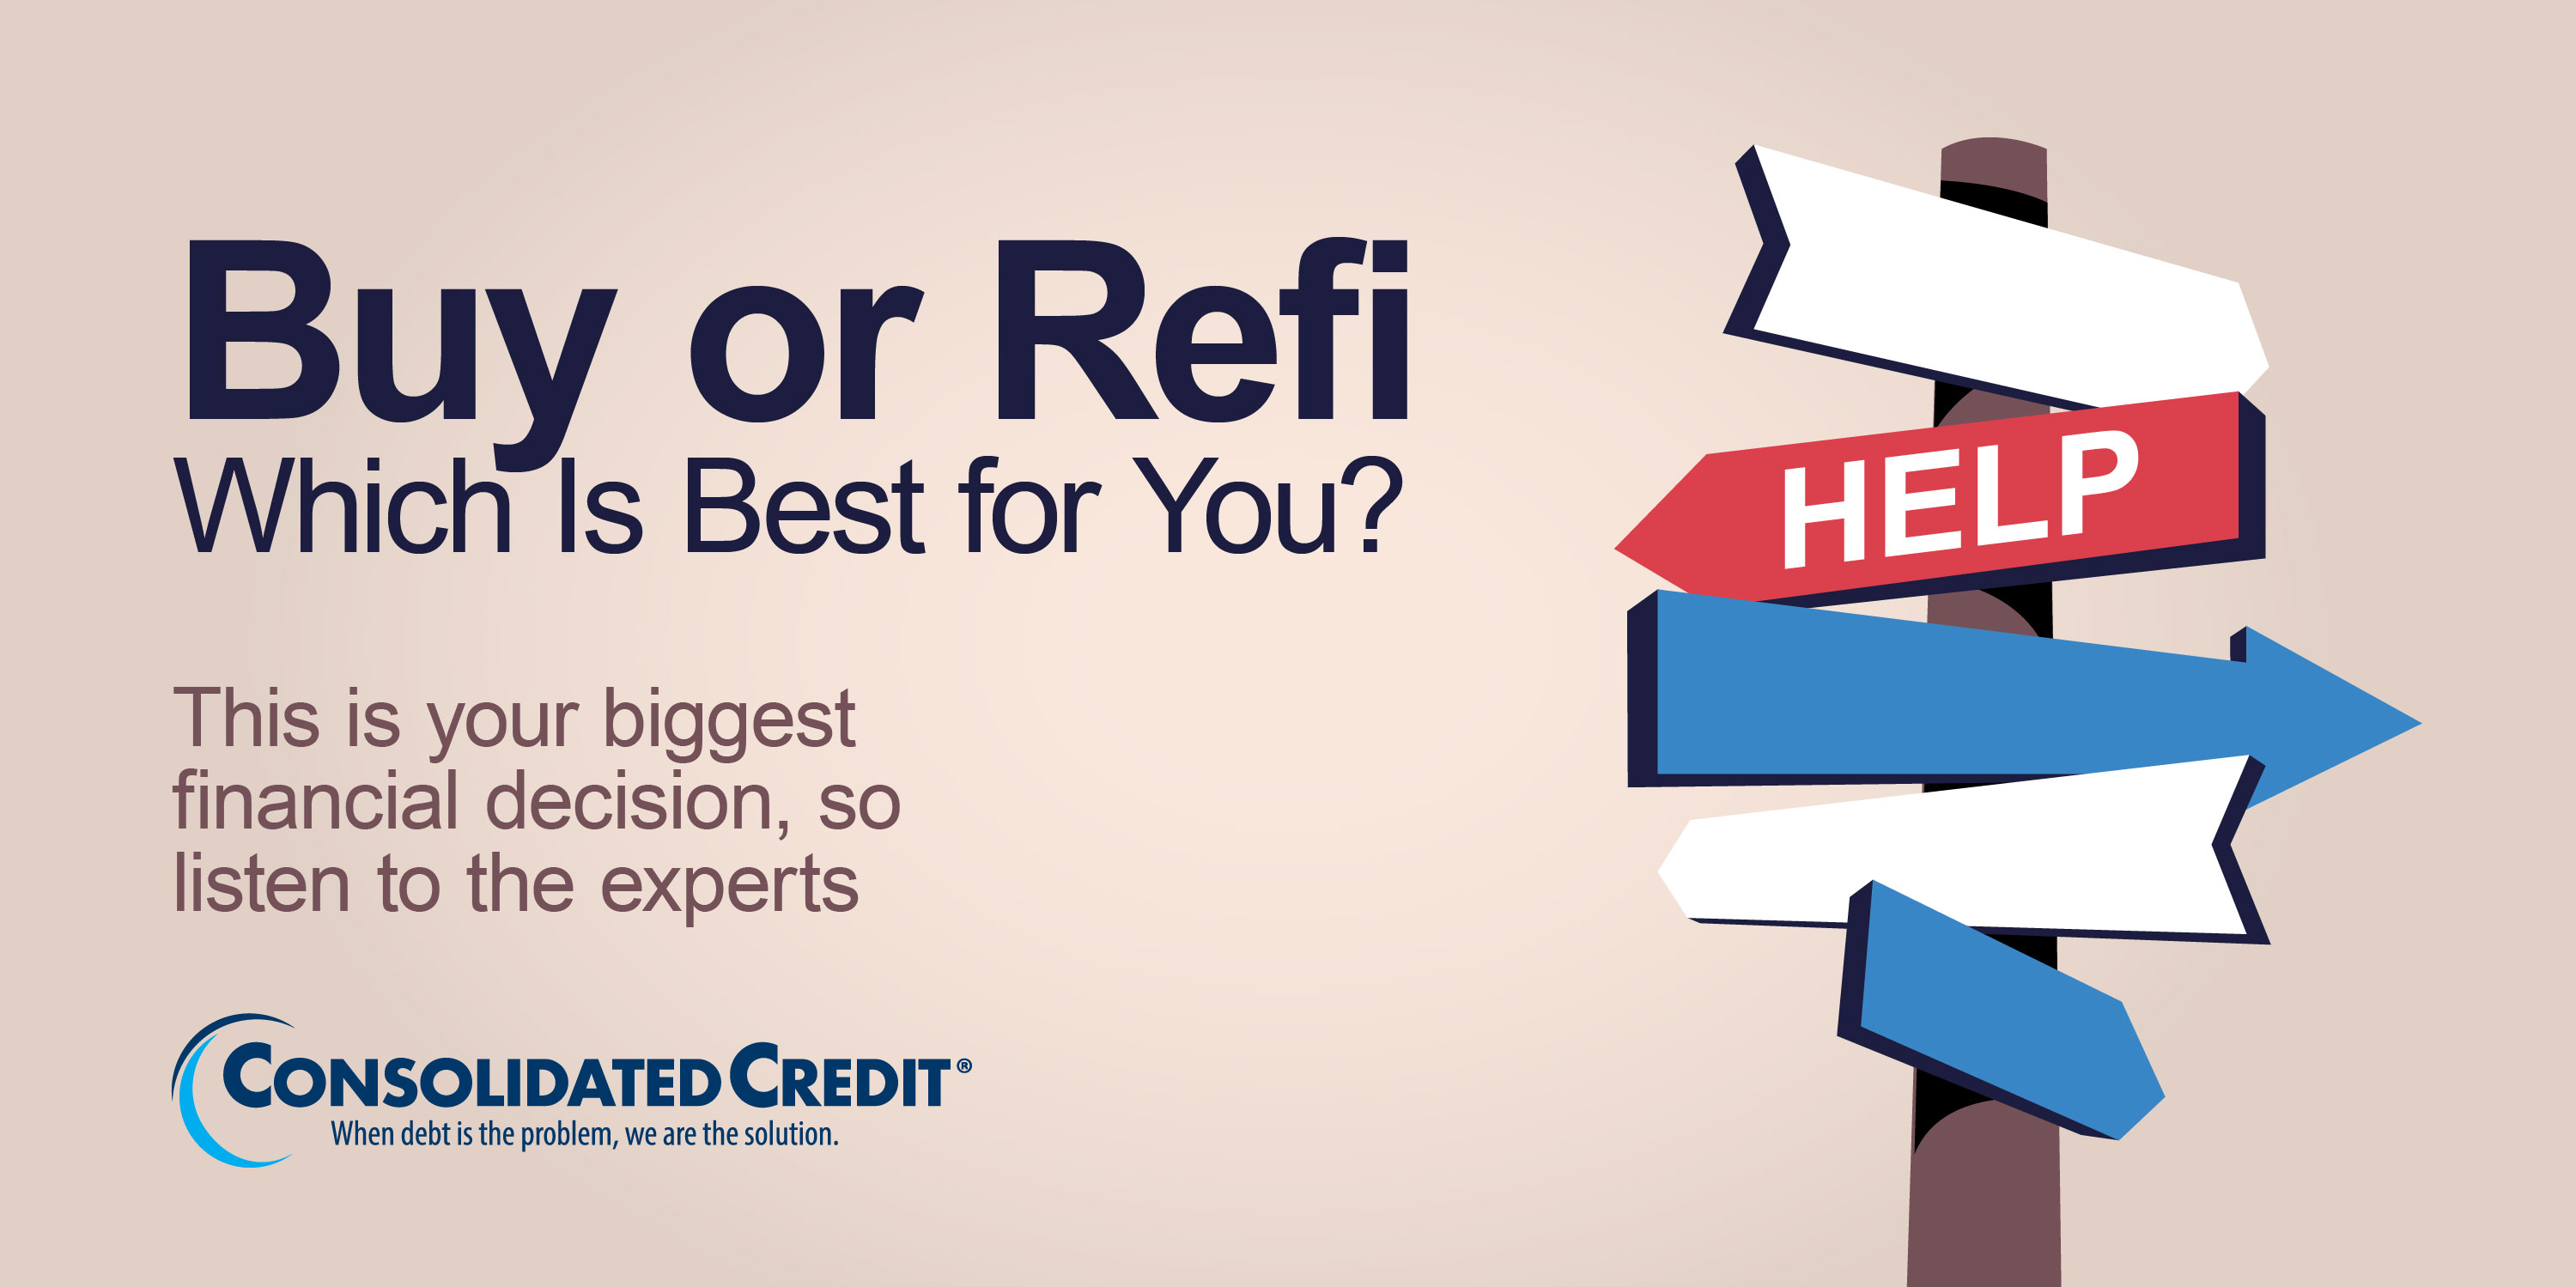 Buy or Refi - Which is Best for You? This is your biggest financial decision, so listen to the experts